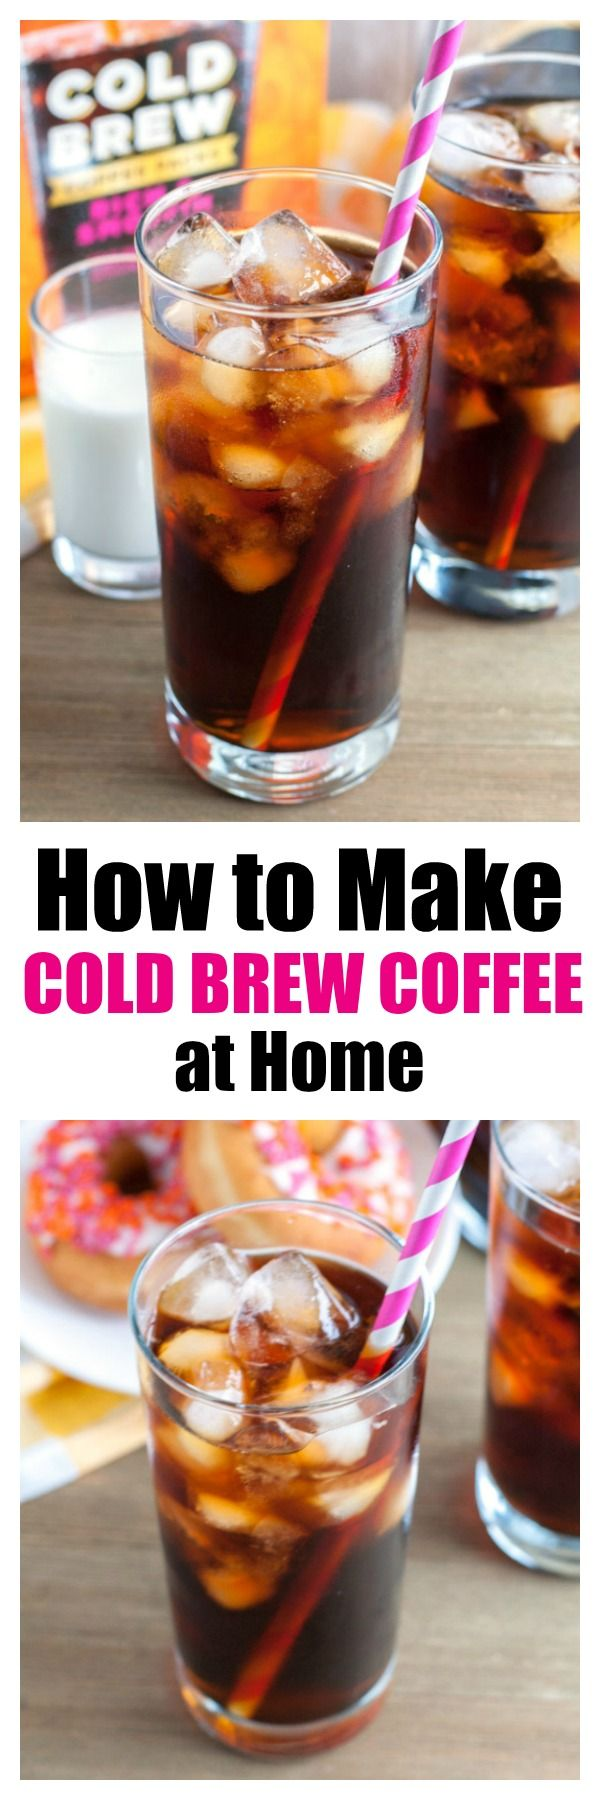 Making cold brew coffee at home is as easy as 123 with